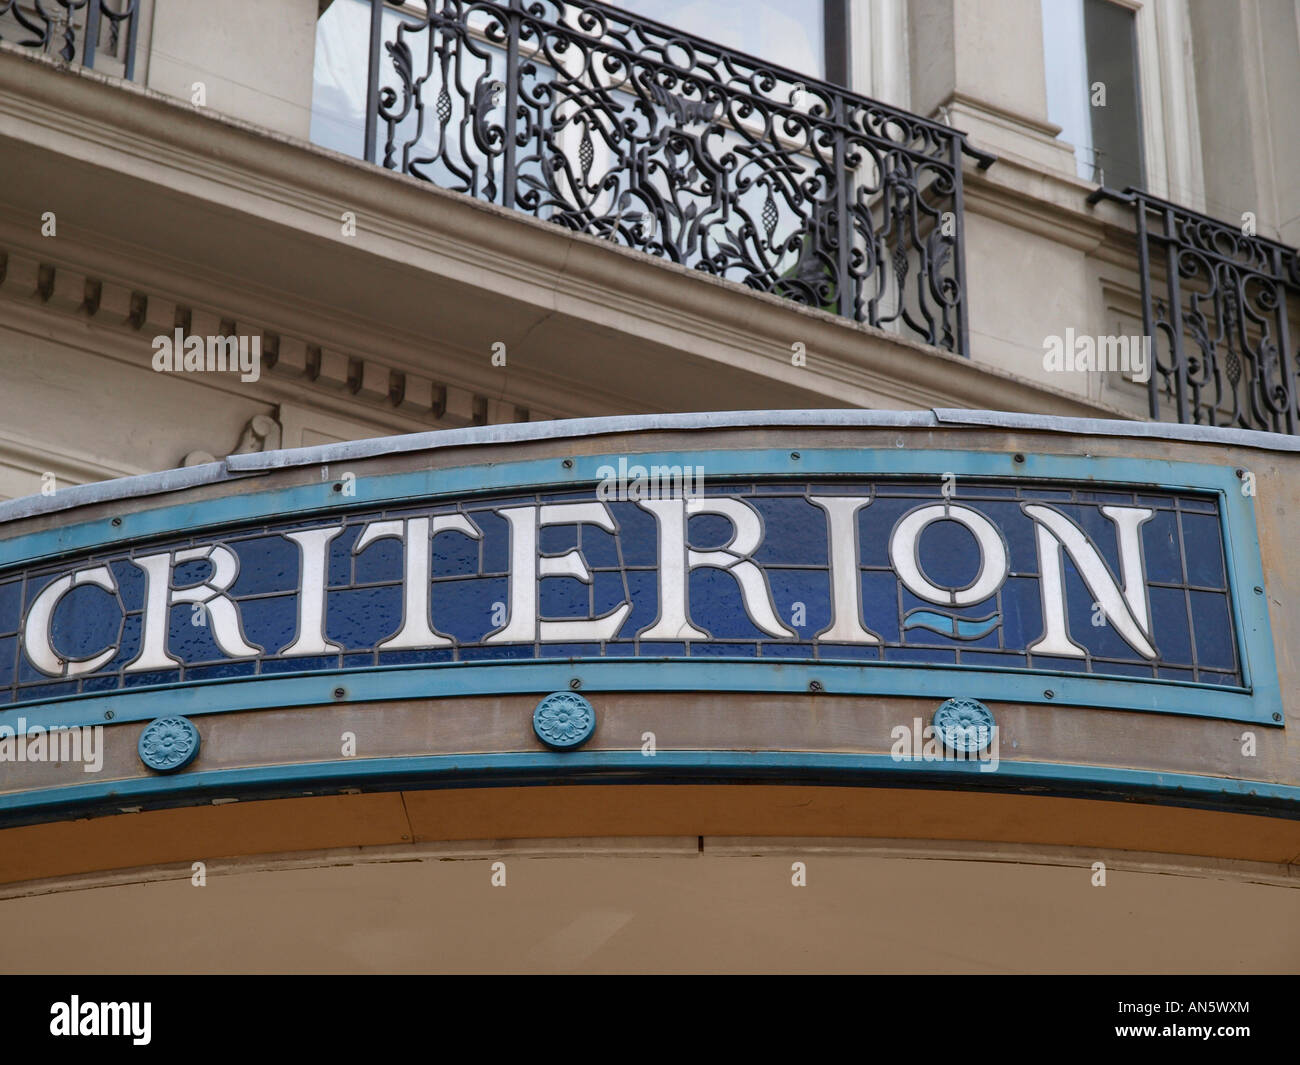 Criterion Restaurant Piccadilly Circus London England - Stock Image